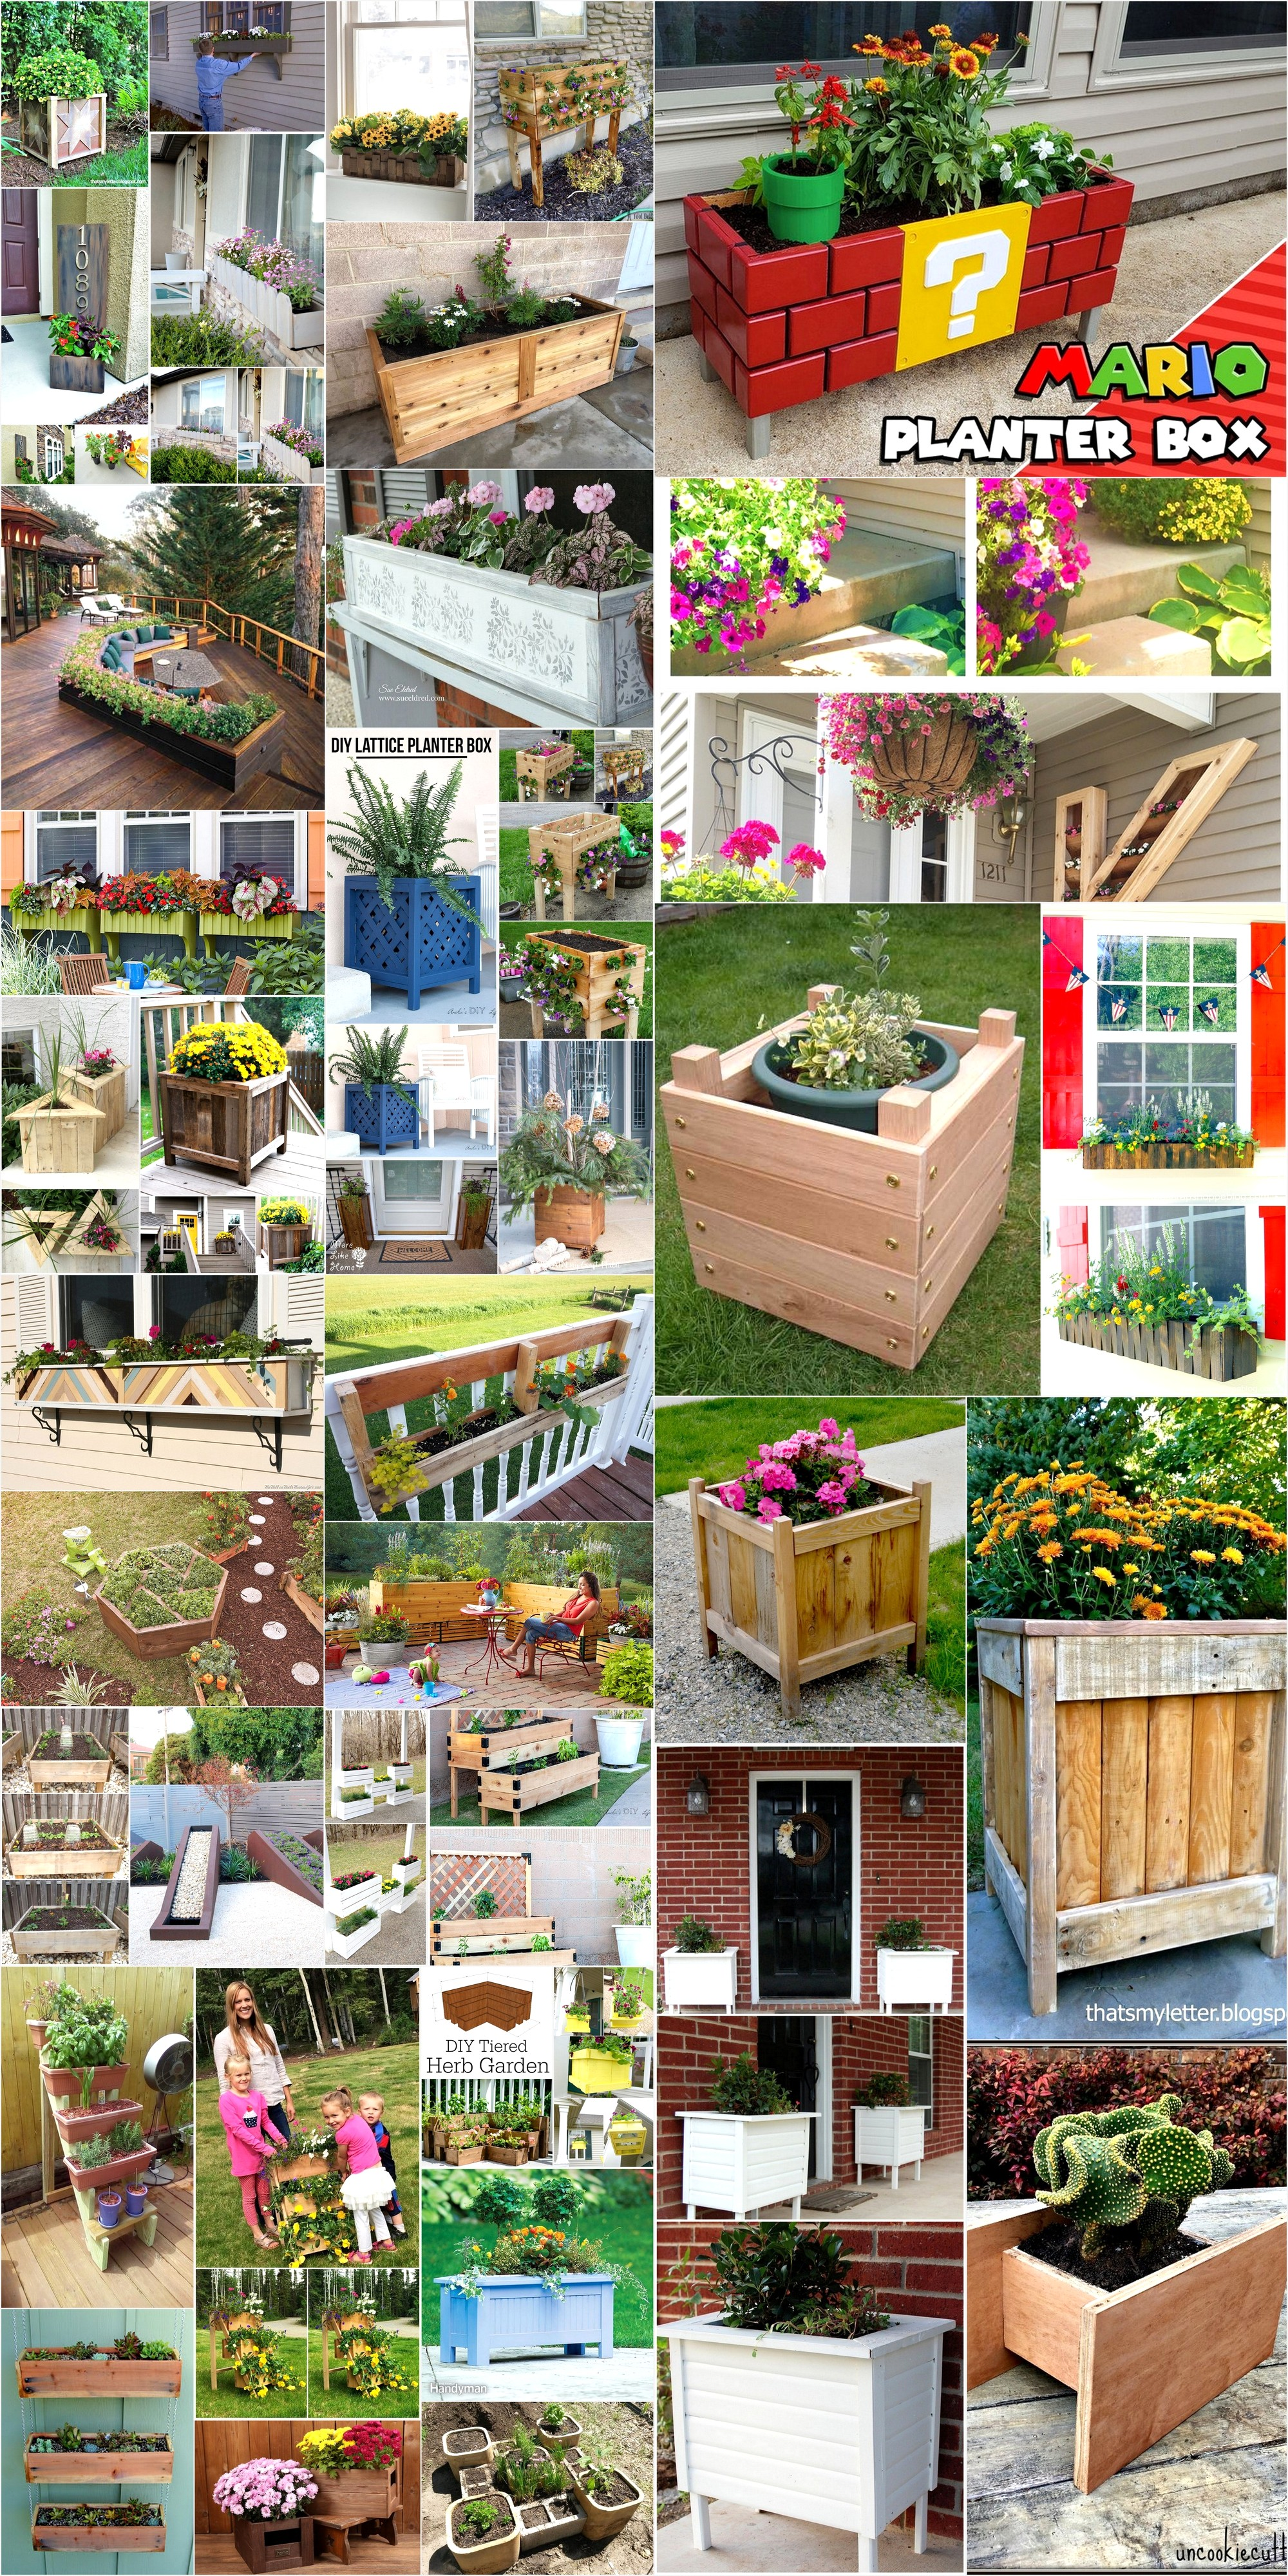 Personalized Diy Planter Box Ideas For Your Home How To Make Diy